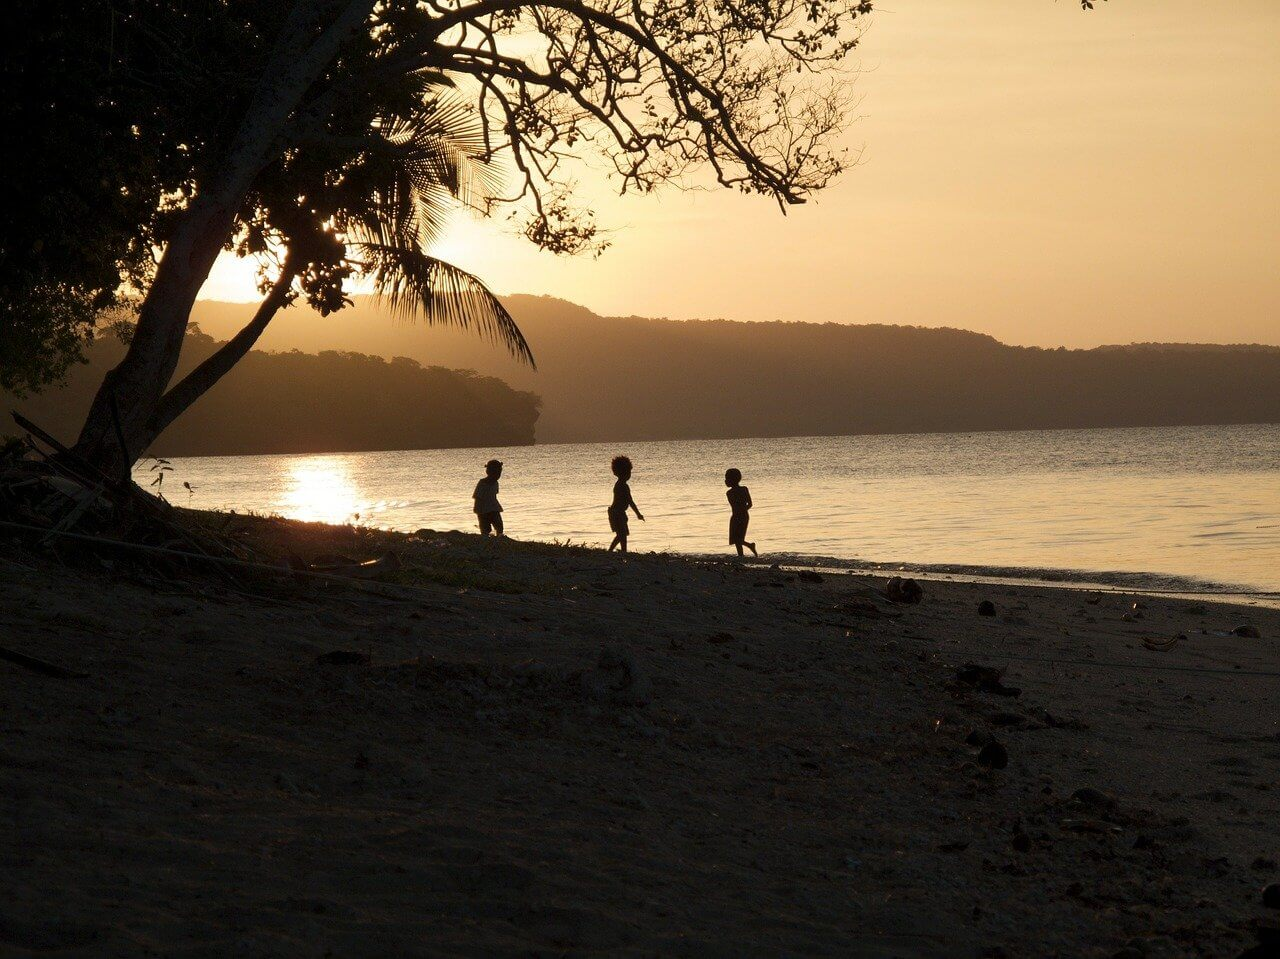 Young boys play on a sunset beach during a tropical holiday in Vanuatu